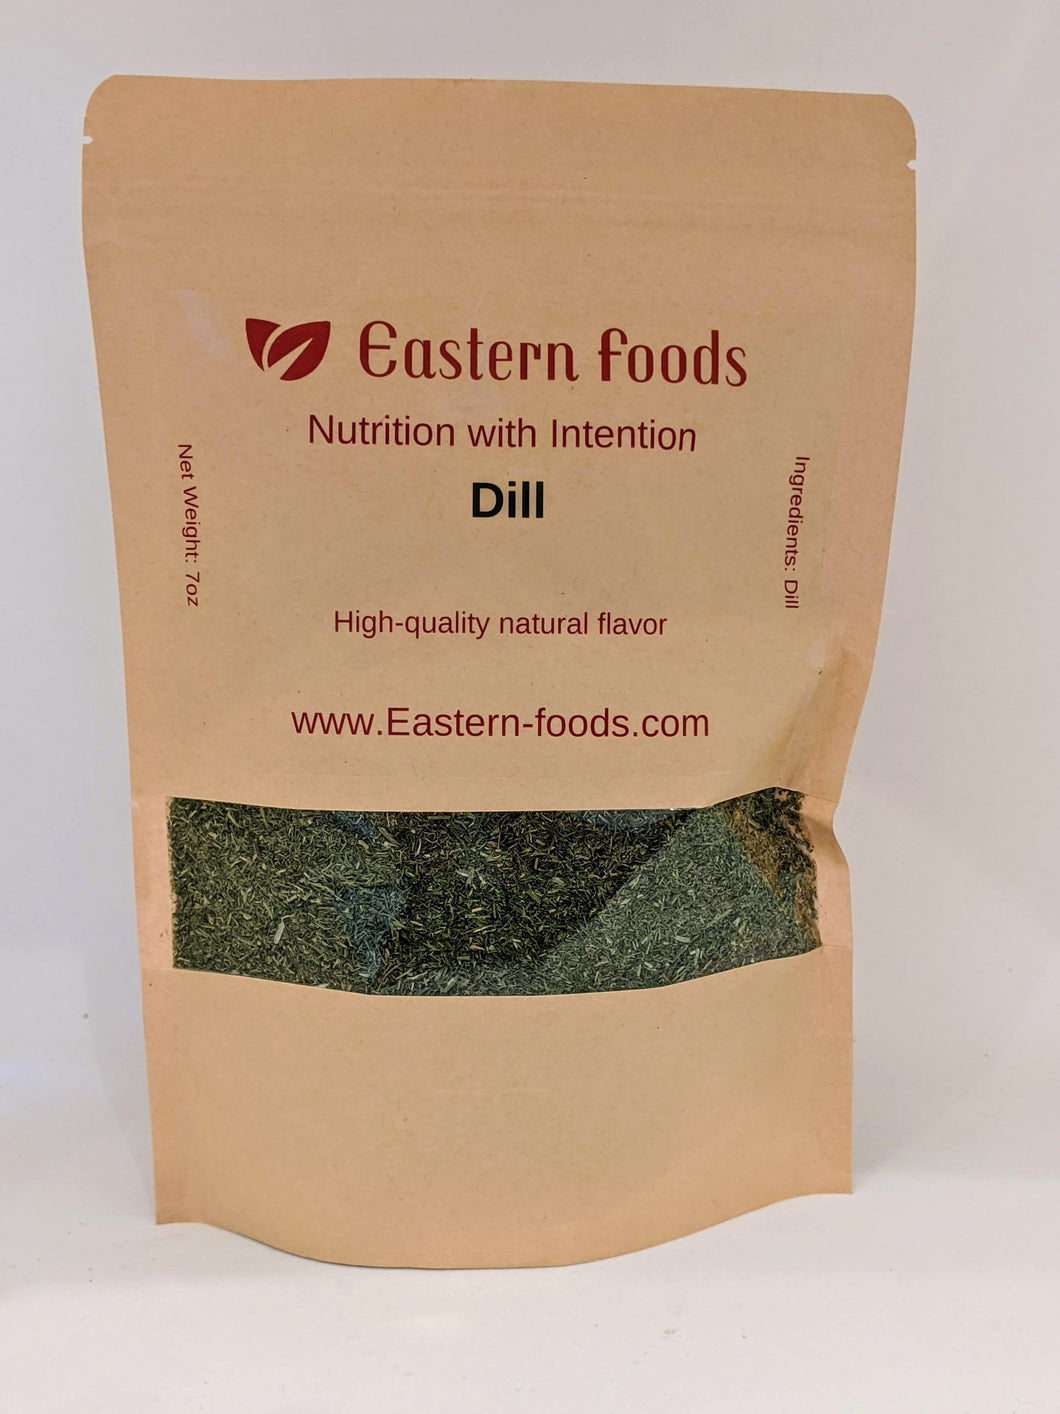 Eastern Foods Dill Weed, 7 oz - High Quality Dried Chopped Dill Weed